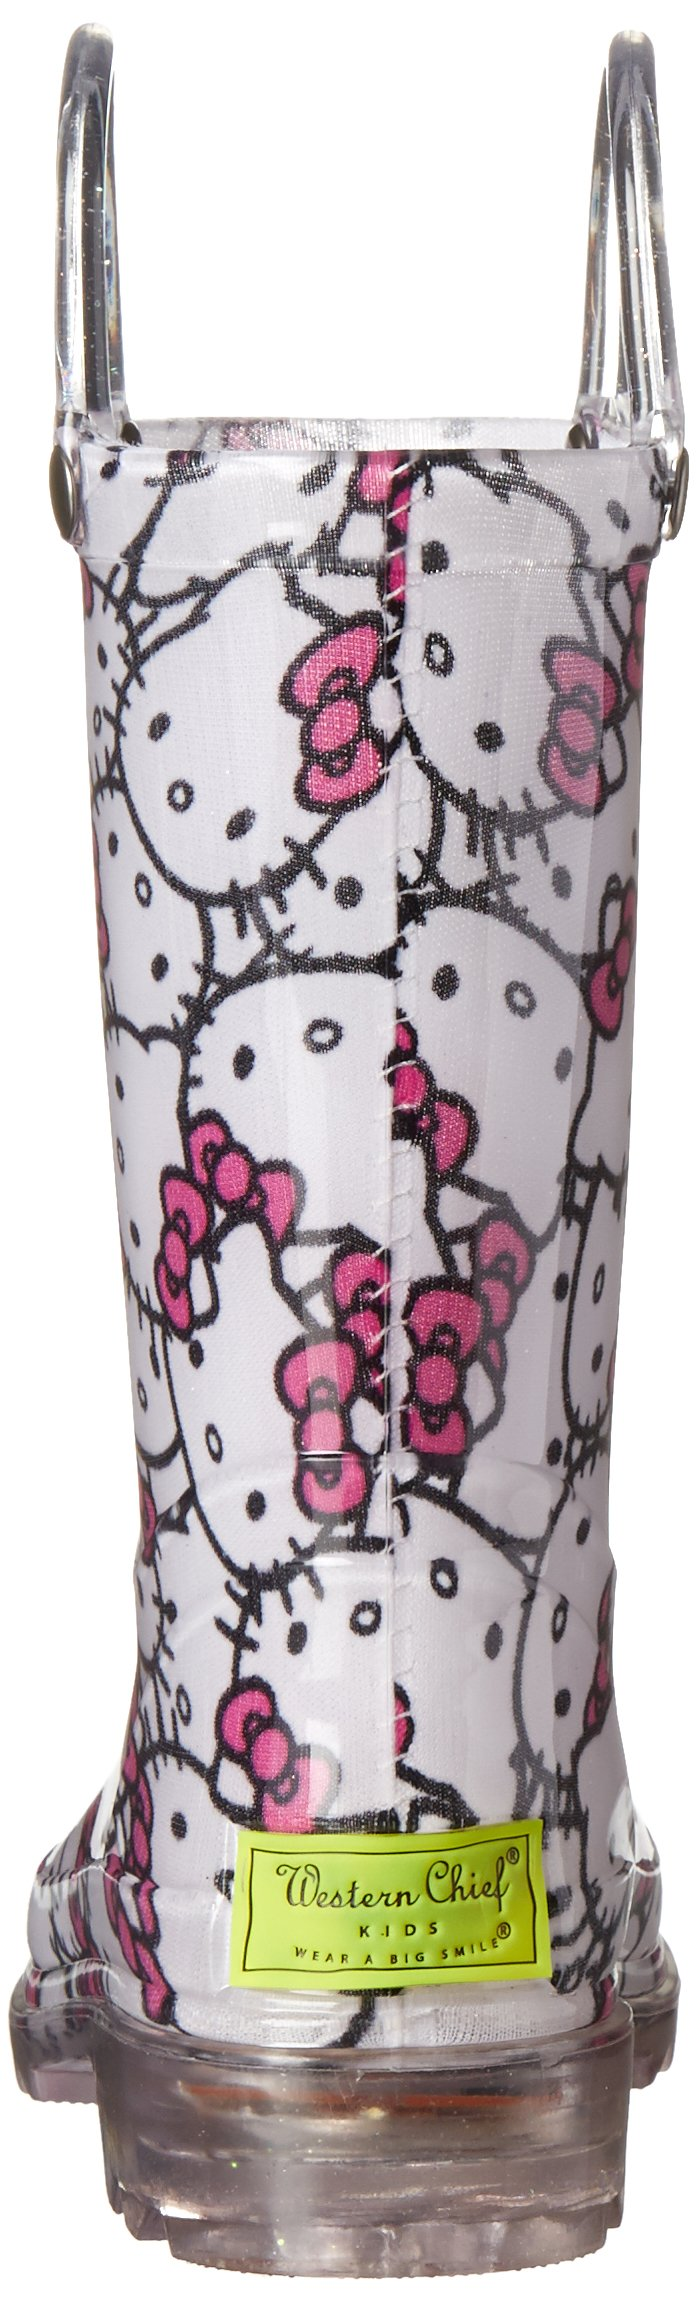 Western Chief Girls' Hello Kitty Waterproof Character Rain Boots with Easy on Handles, Light-up Hello Kitty, 12 M US Little Kid by Western Chief (Image #2)